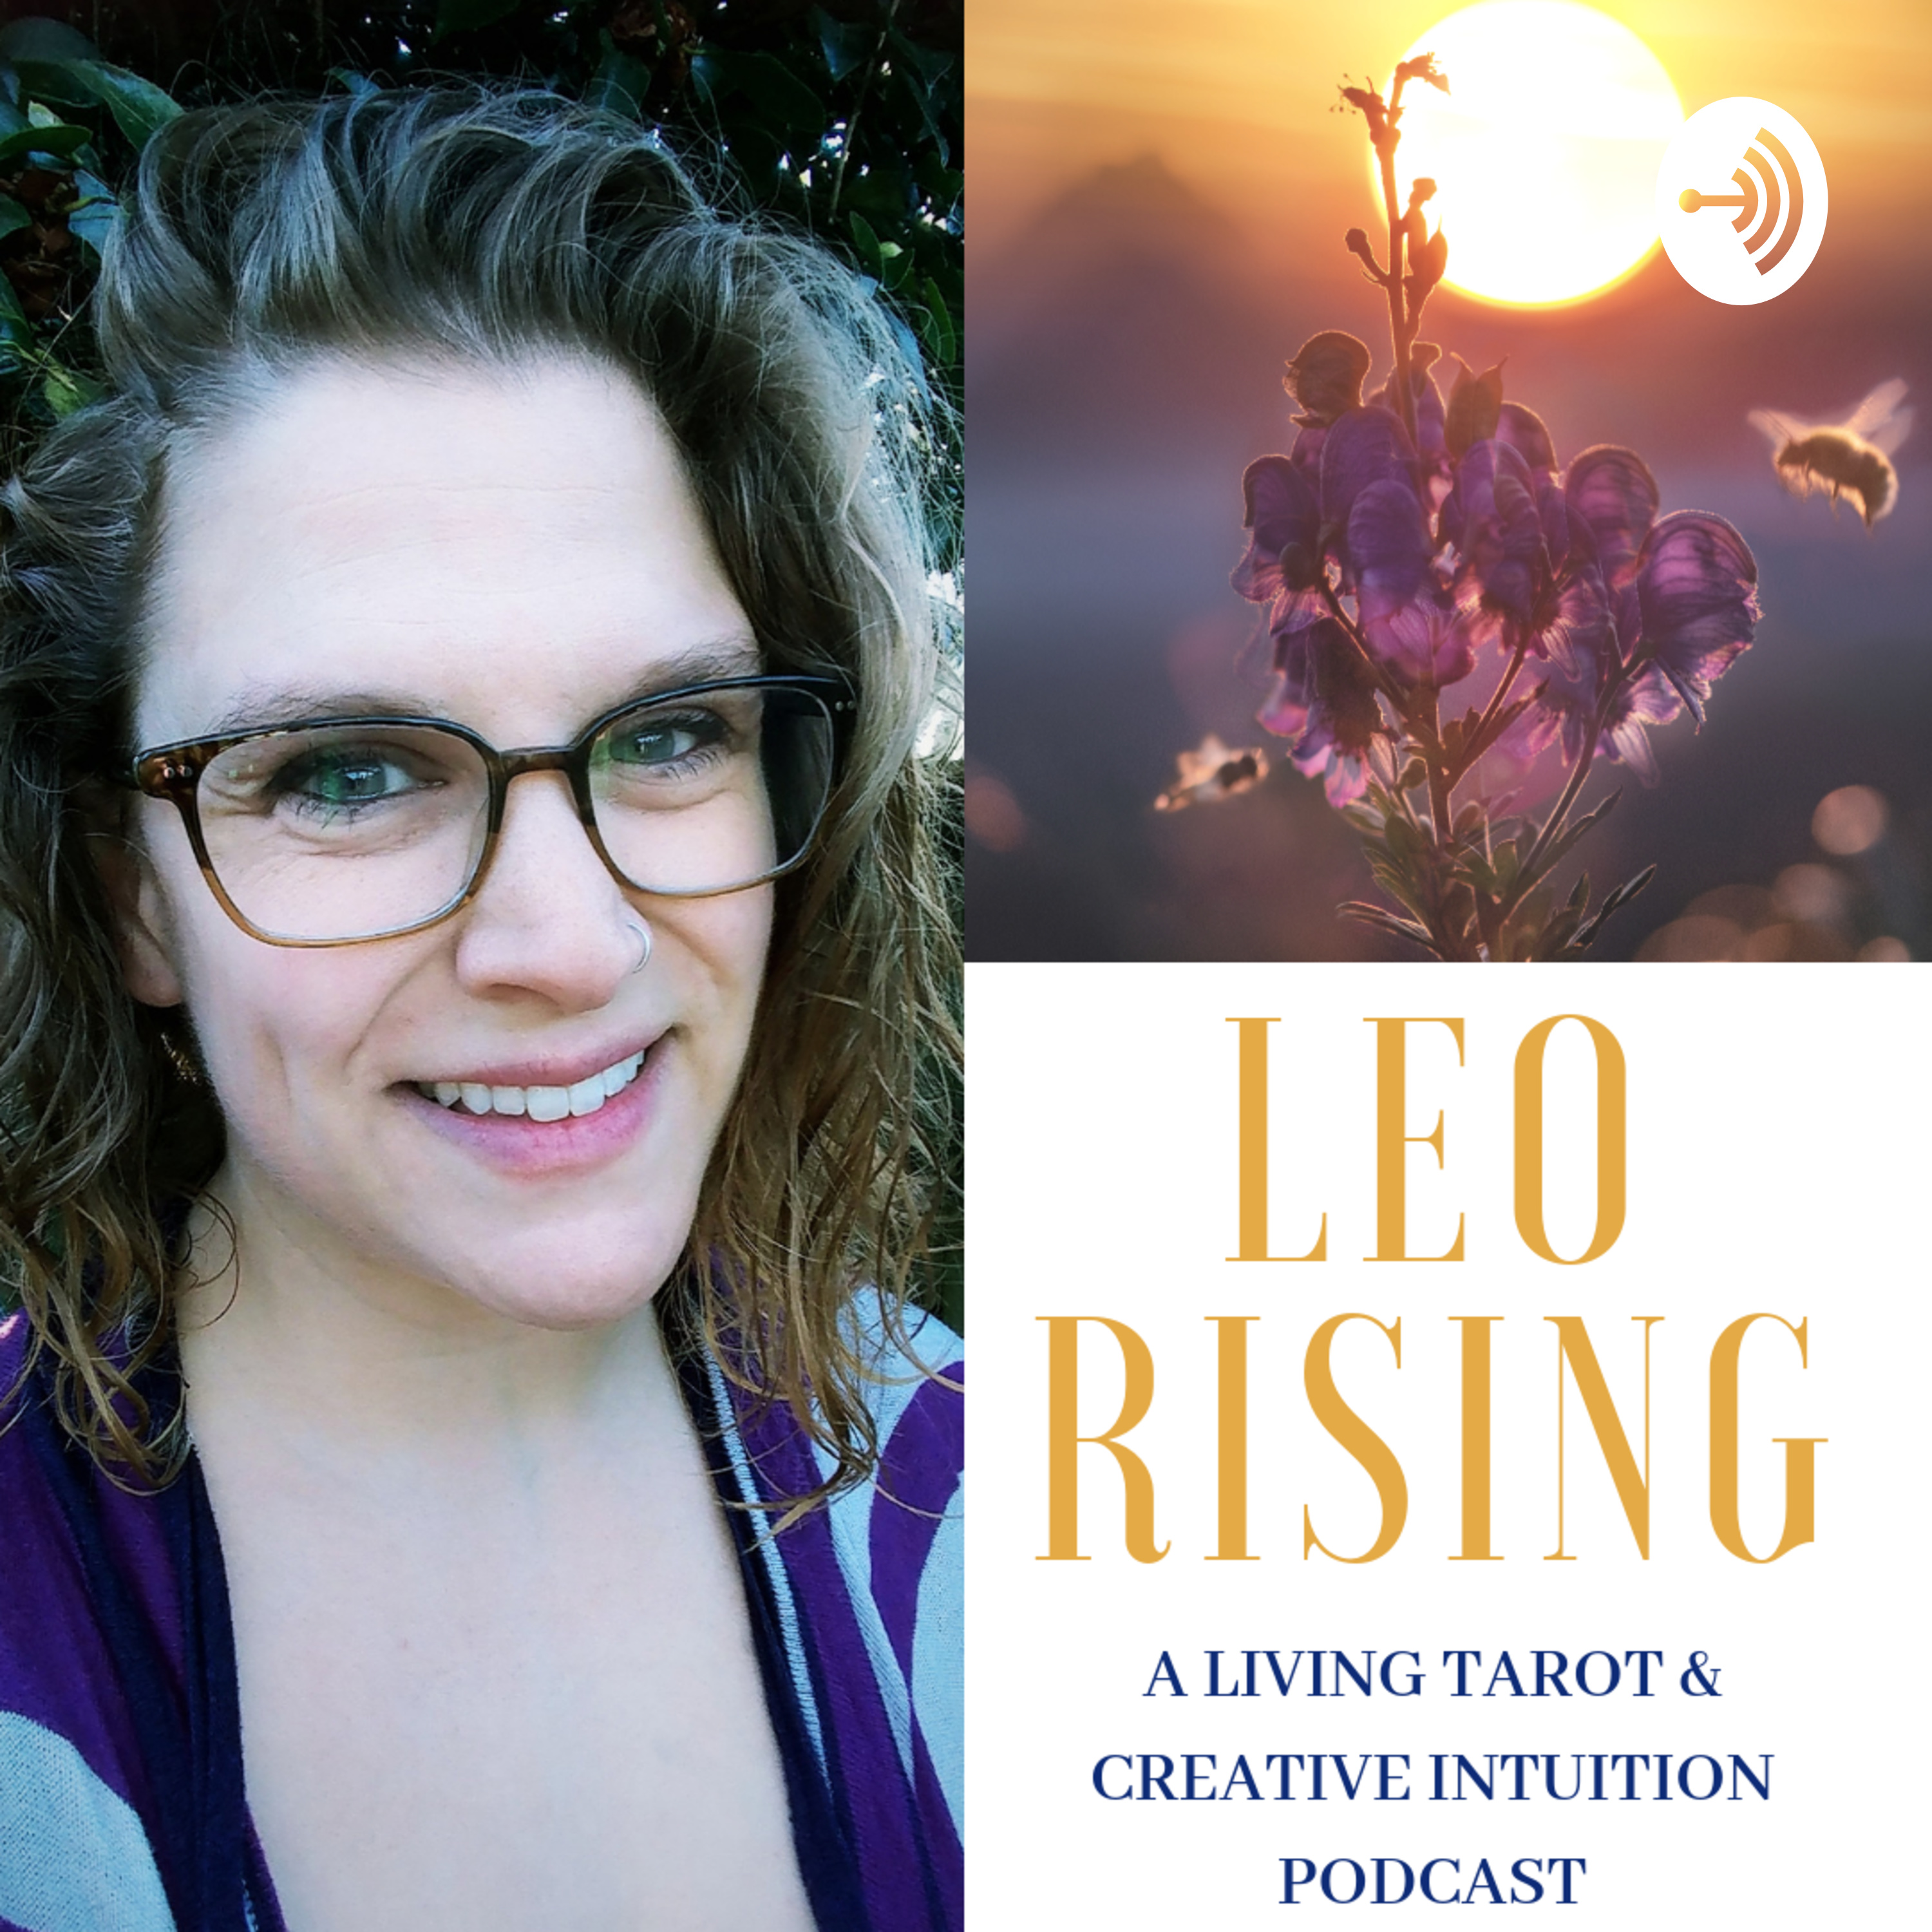 Best Leo Rising A Living Tarot Creative Intuition Podcast Podcasts Most Downloaded Episodes